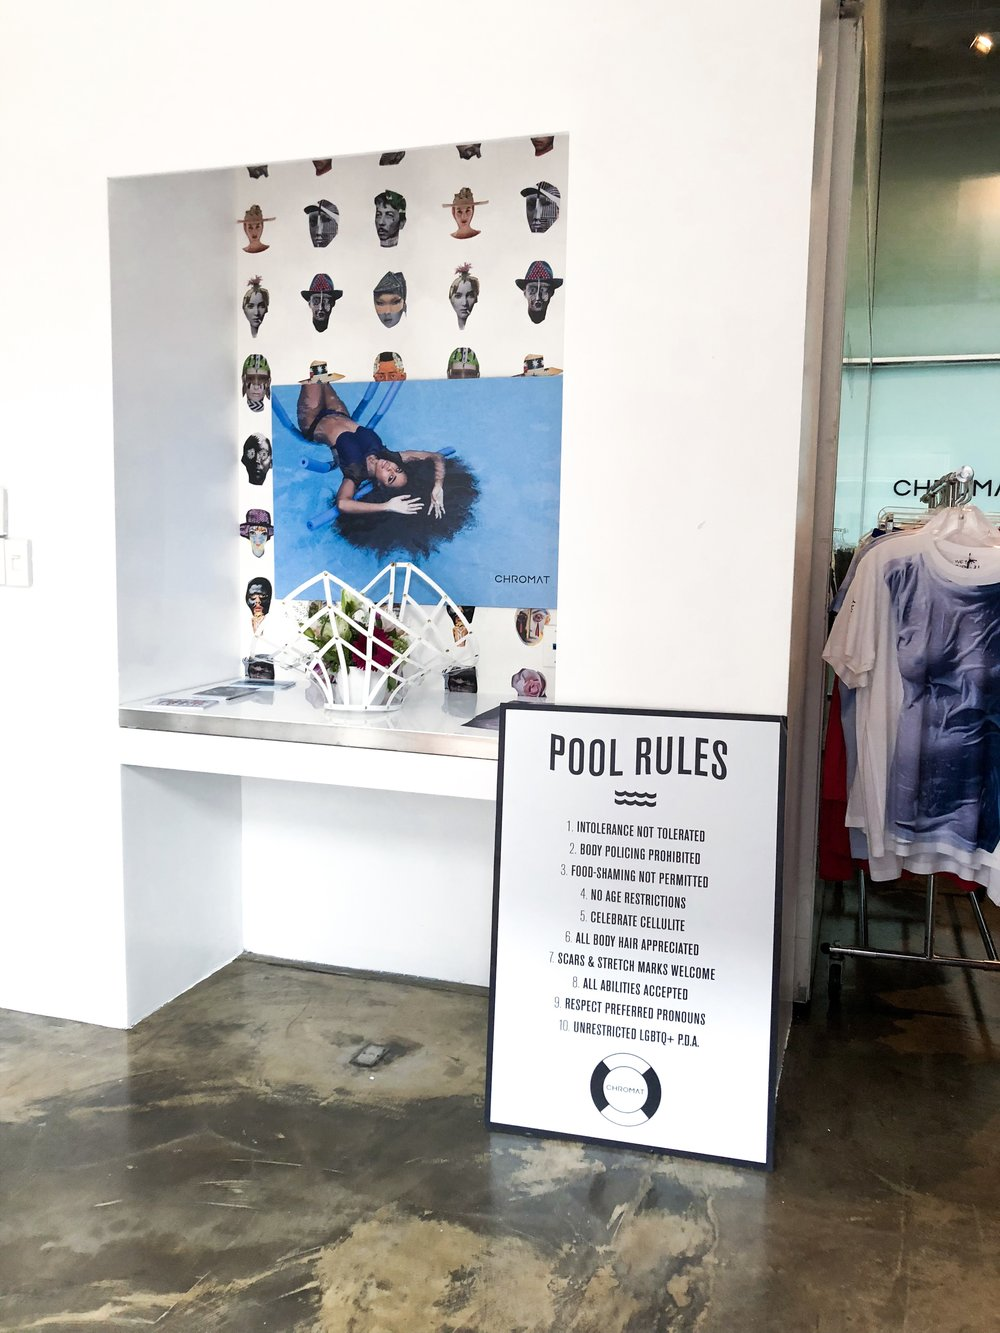 Pool Rules at the Chromat Pop Up